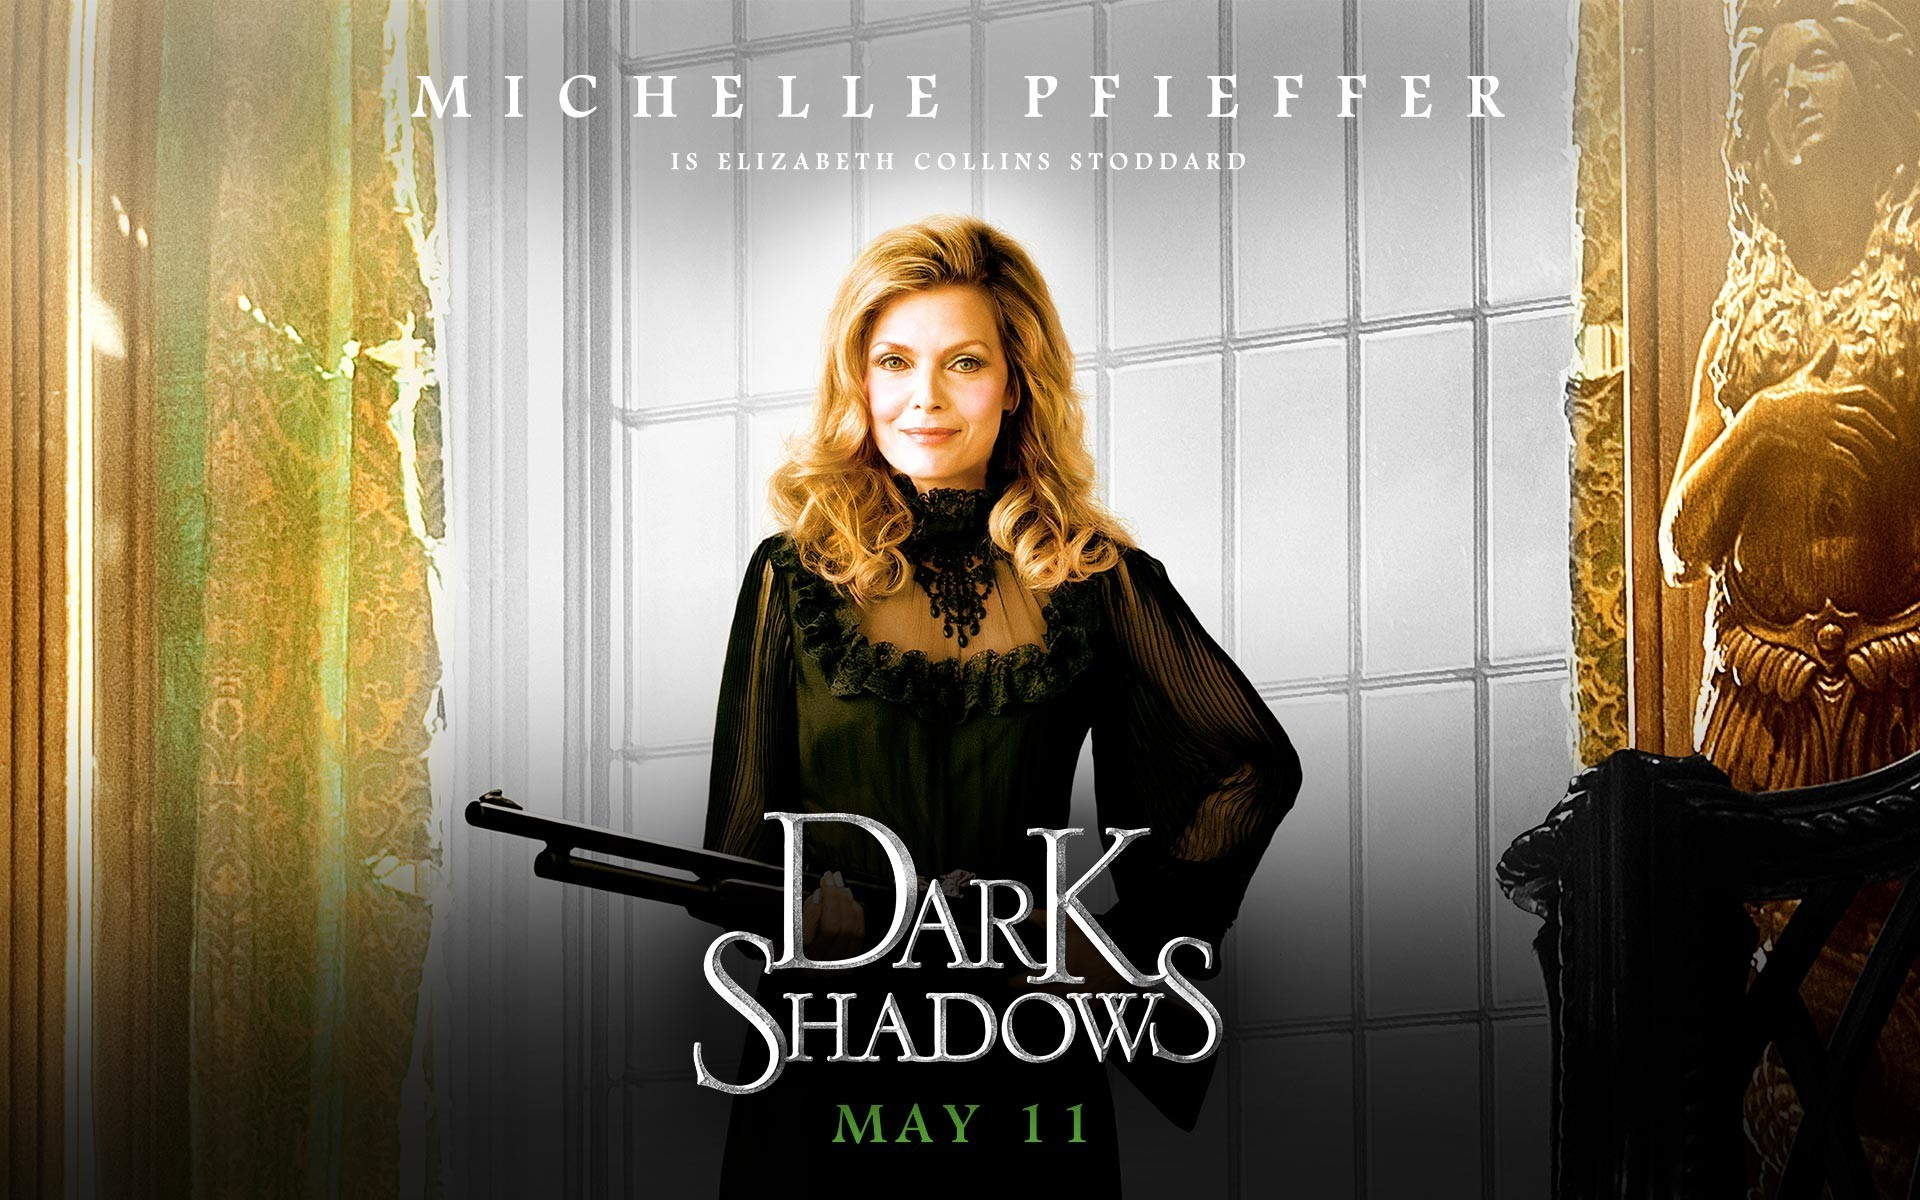 1920x1200 Movies michelle pfeiffer dark shadows wallpaper